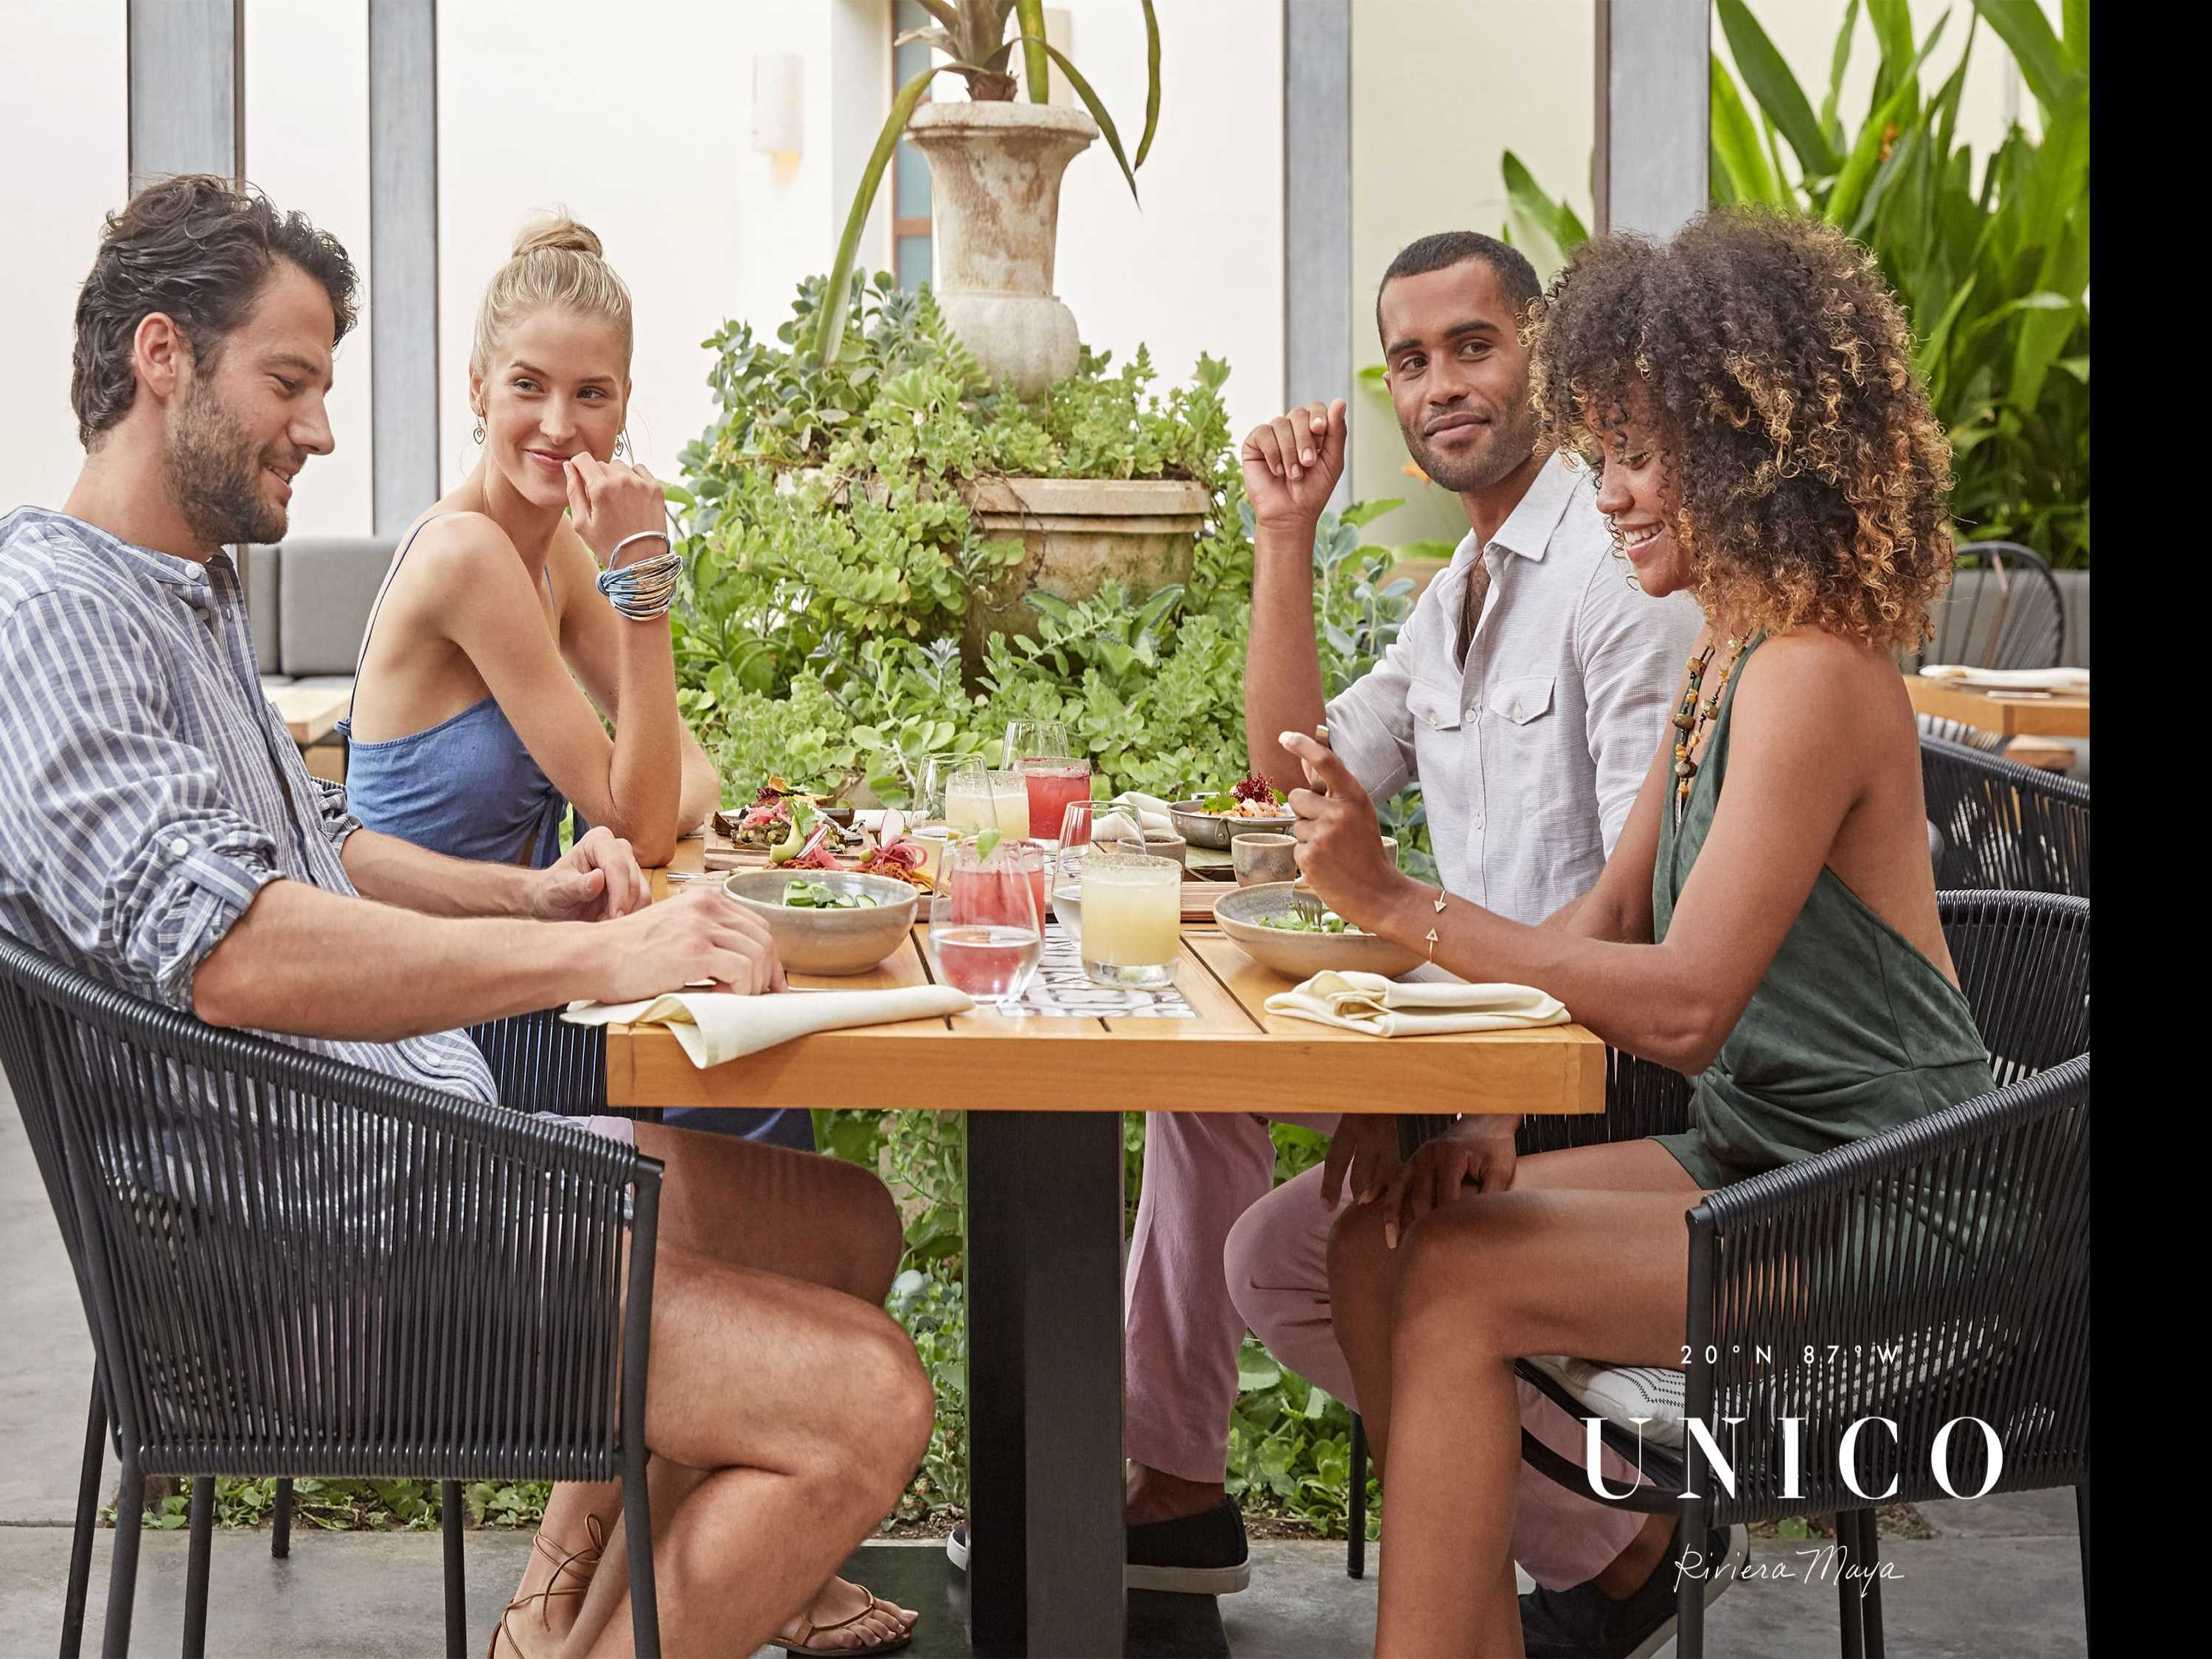 UNICO 20º87º Hotel Riviera Maya Reveals Chef Line-Up For Summer Gastronomy Takeover